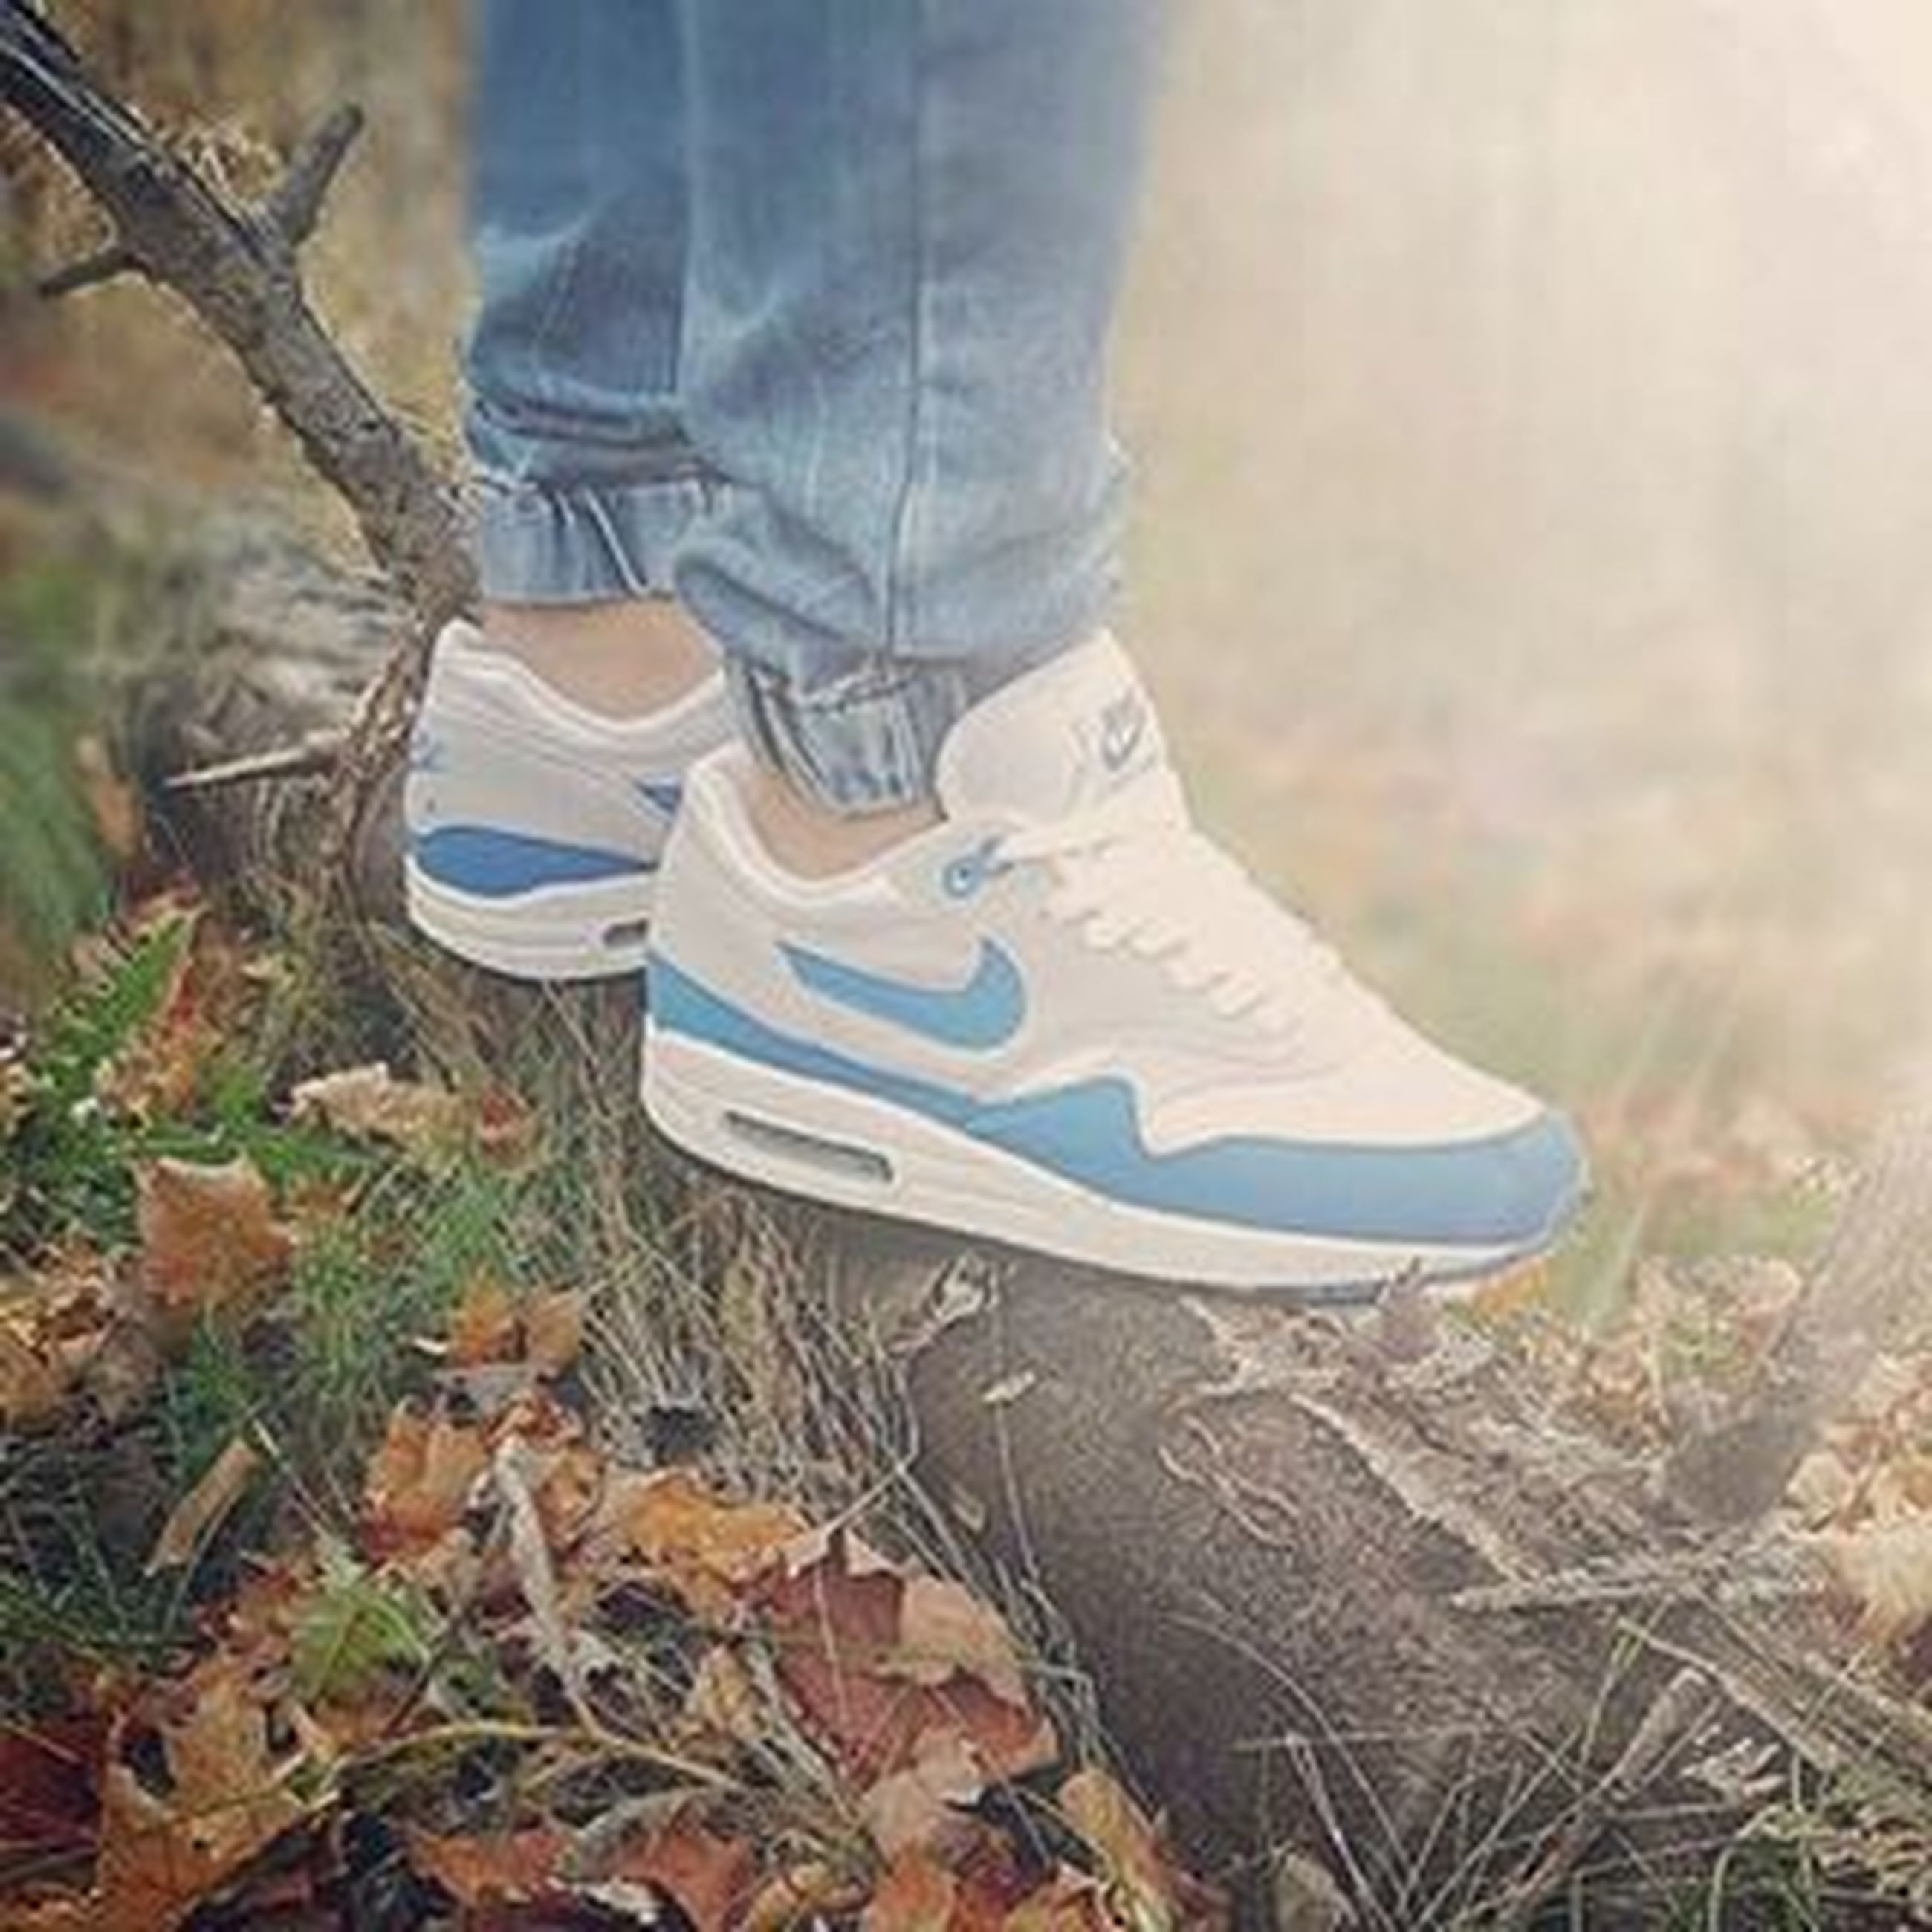 focus on foreground, field, grass, close-up, day, one person, nature, shoe, outdoors, dry, leaf, forest, high angle view, plant, selective focus, low section, autumn, tranquility, messy, growth